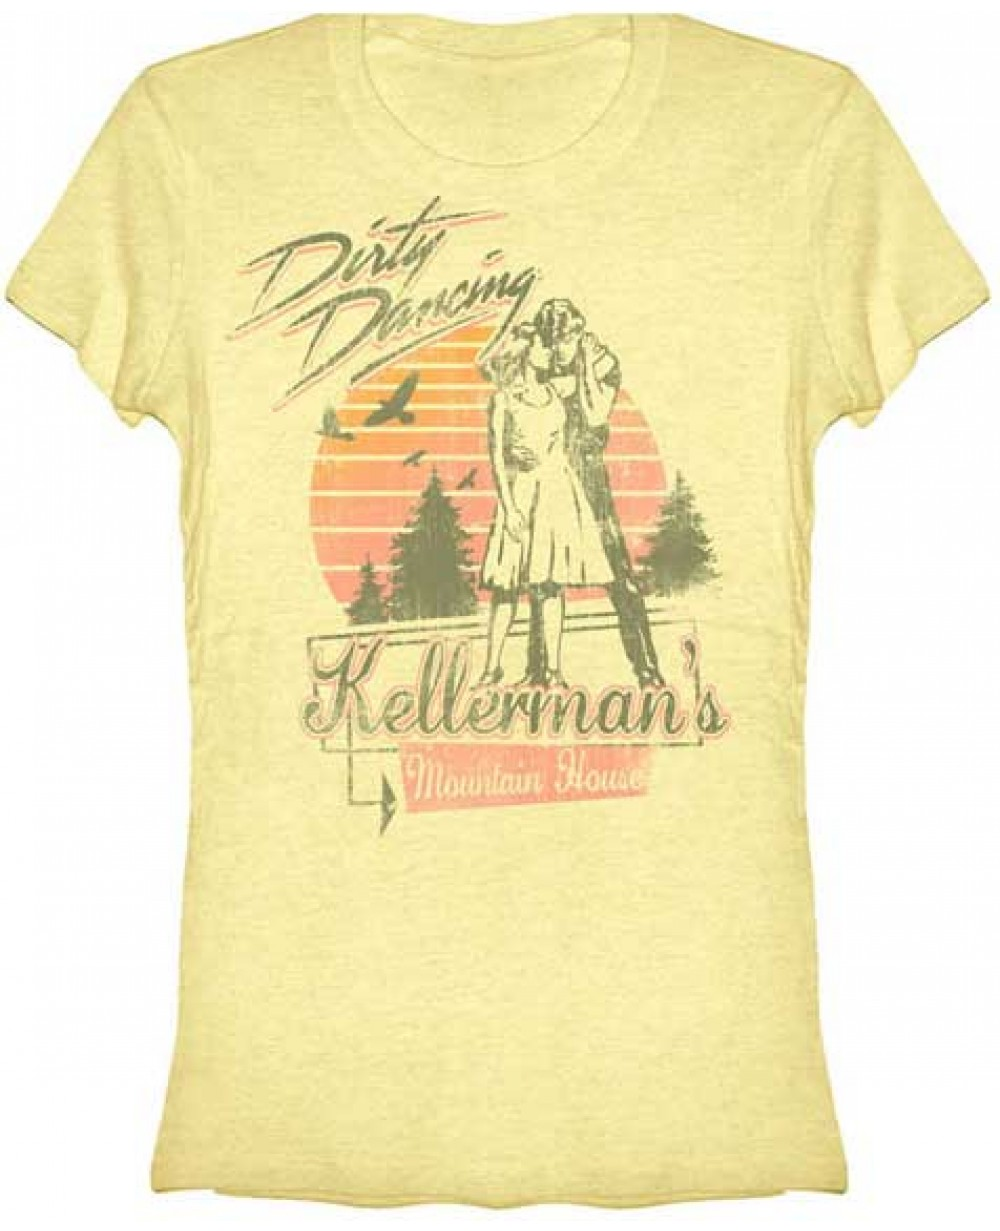 Dirty Dancing T Shirts T Shirt Design Database